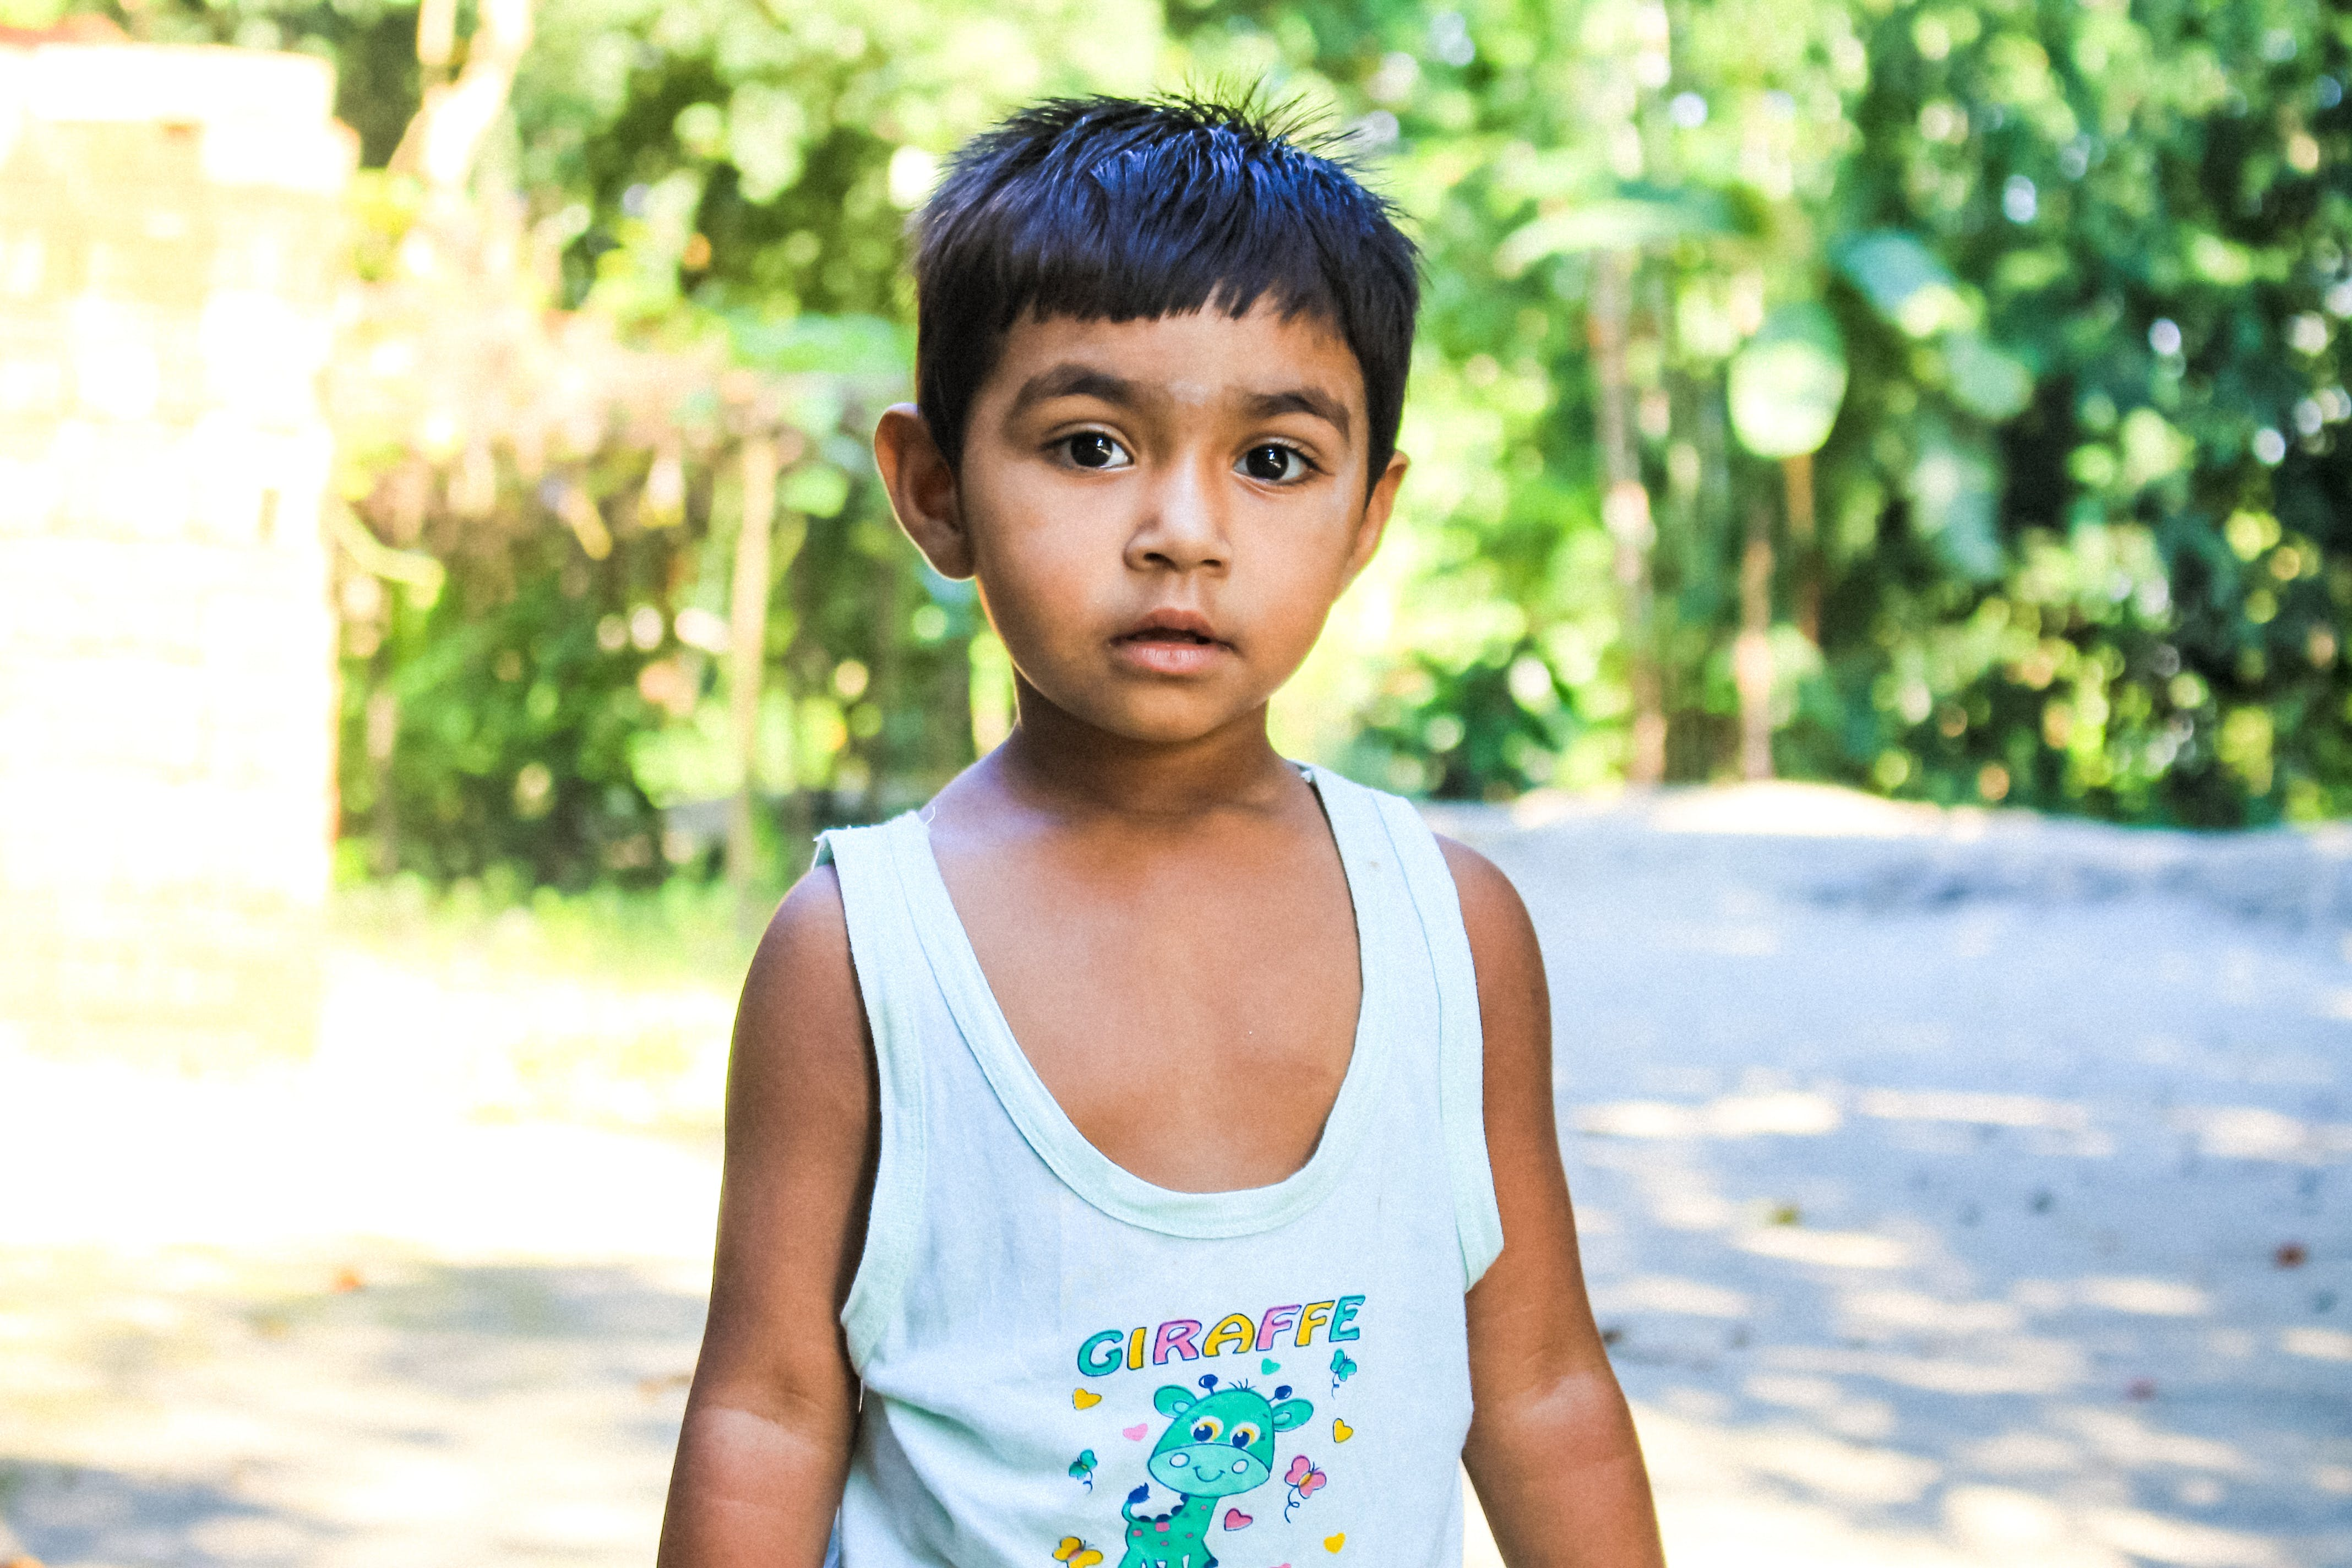 Boy in White Tank Top Standing on Focus Photo